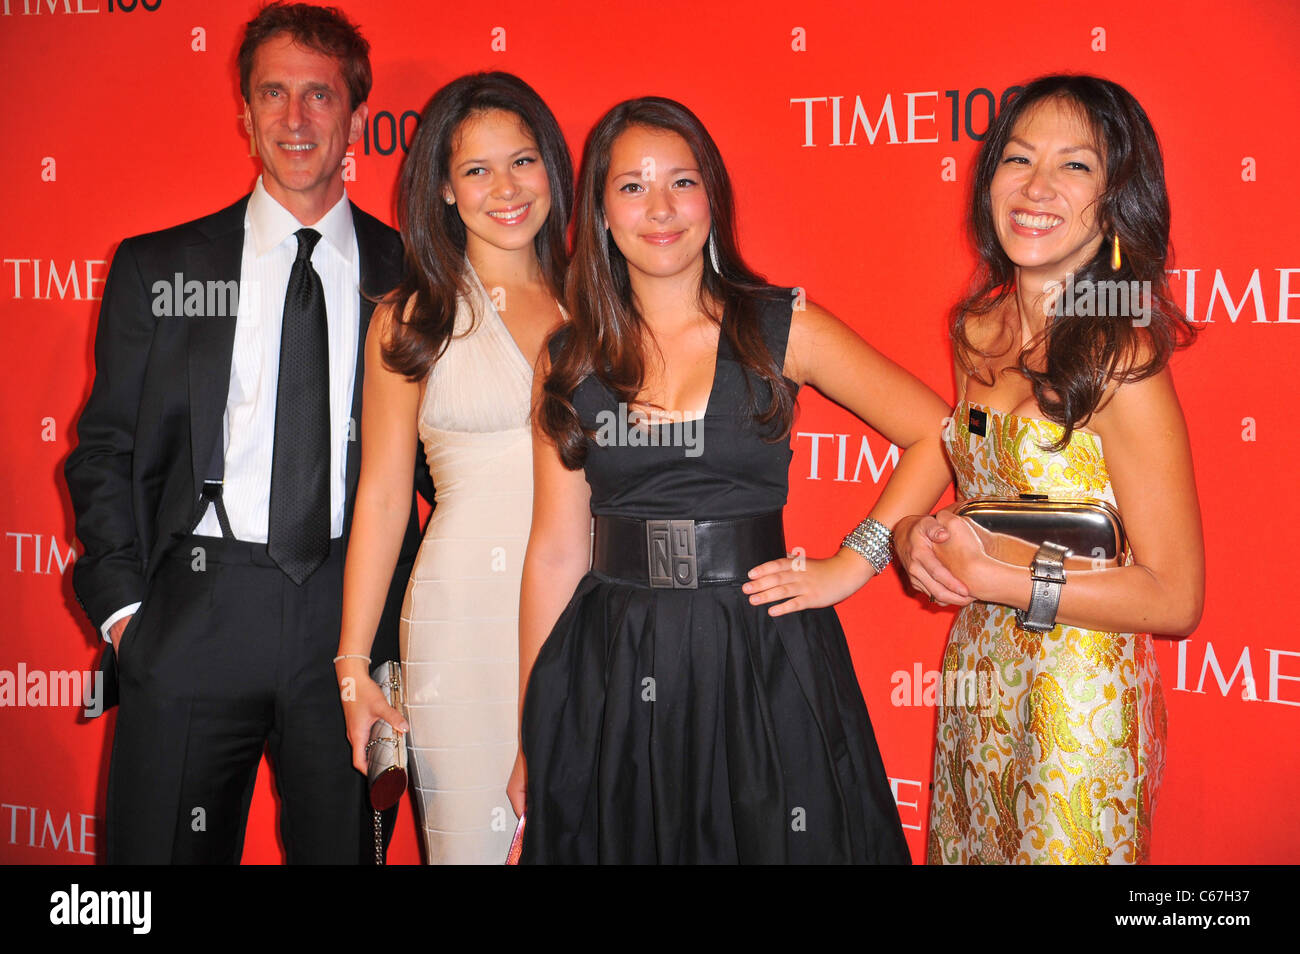 Amy Chua, Family at arrivals for TIME 100 GALA, Frederick P. Rose Hall - Jazz at Lincoln Center, New York, NY April - Stock Image